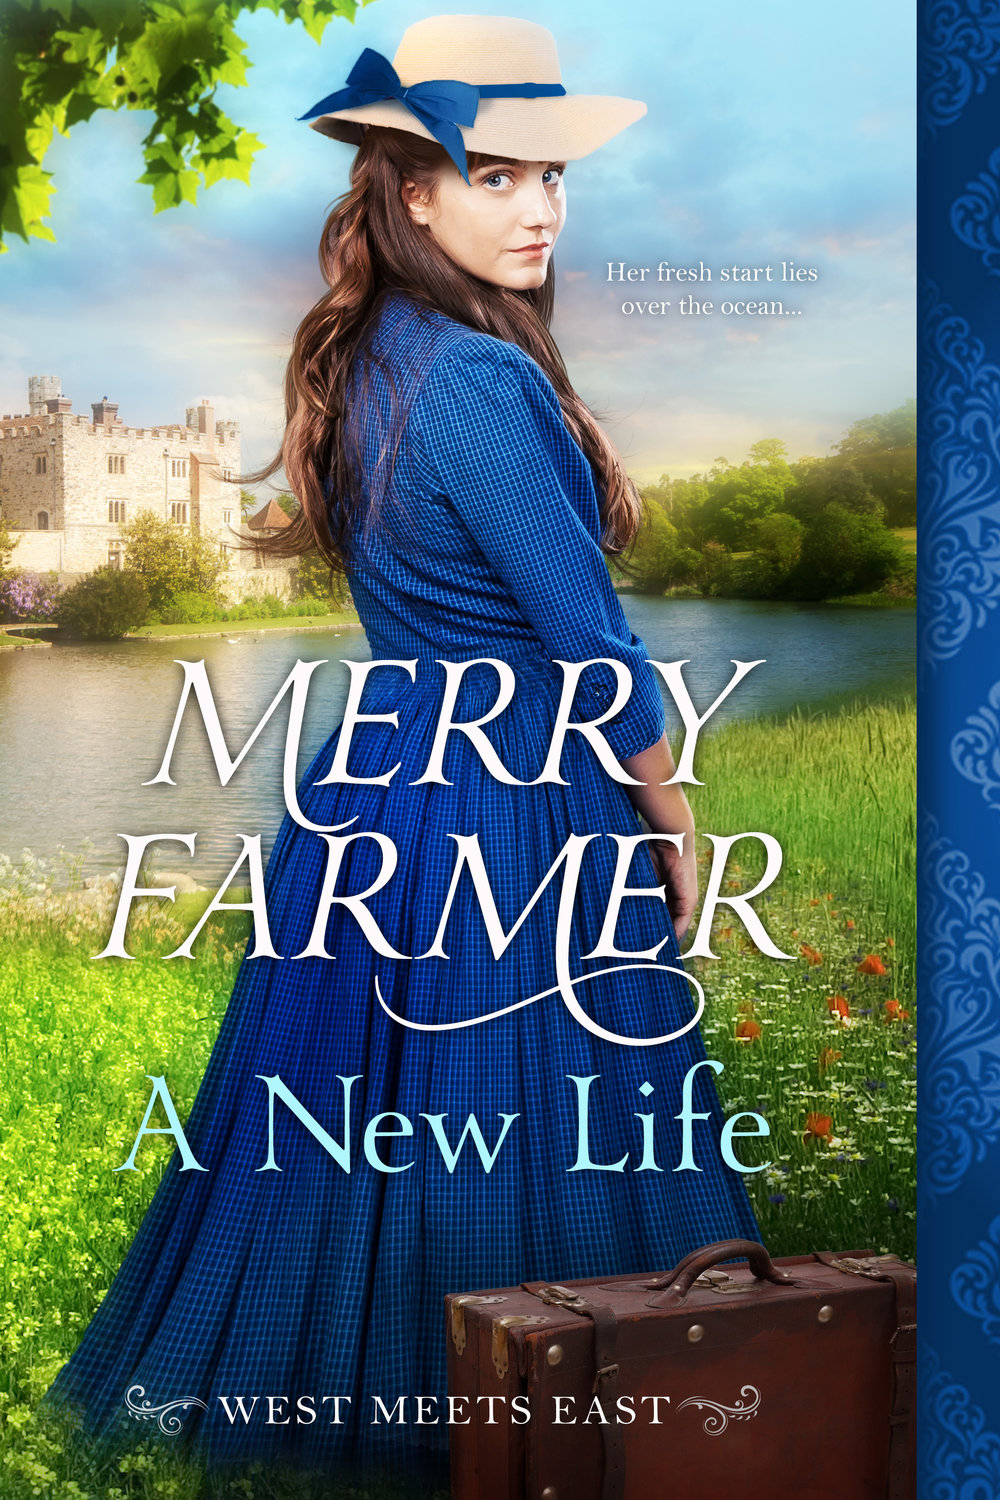 A New Life (Book 1) - Millie Horner considers herself the luckiest woman in the world. Saved from a life of prostitution in the Old West, she is determined to make a new life for herself across the ocean in Cornwall, England. But life below-stairs at Starcross Castle is filled with its own problems, specifically, the problem of making sure that none of her new friends discover the life she came from.That challenge becomes even harder when she falls for handsome and ambitious footman, Owen Llewellyn.Owen has his sights set on winning a job as foreman of one of the mines on the property owned by Starcross Castle's lord, Peter deVere, the Earl of Dunsford. Those plans take on a new urgency as love blooms between him and Millie. But Lord Dunsford's wicked nephew, Lord William is determined to undermine Owen and bend Millie to his own lascivious designs.Can the power of love overcome all obstacles, or will Millie's past stop her from living a new life?PLEASE BE ADVISED – Steam Level: Hot